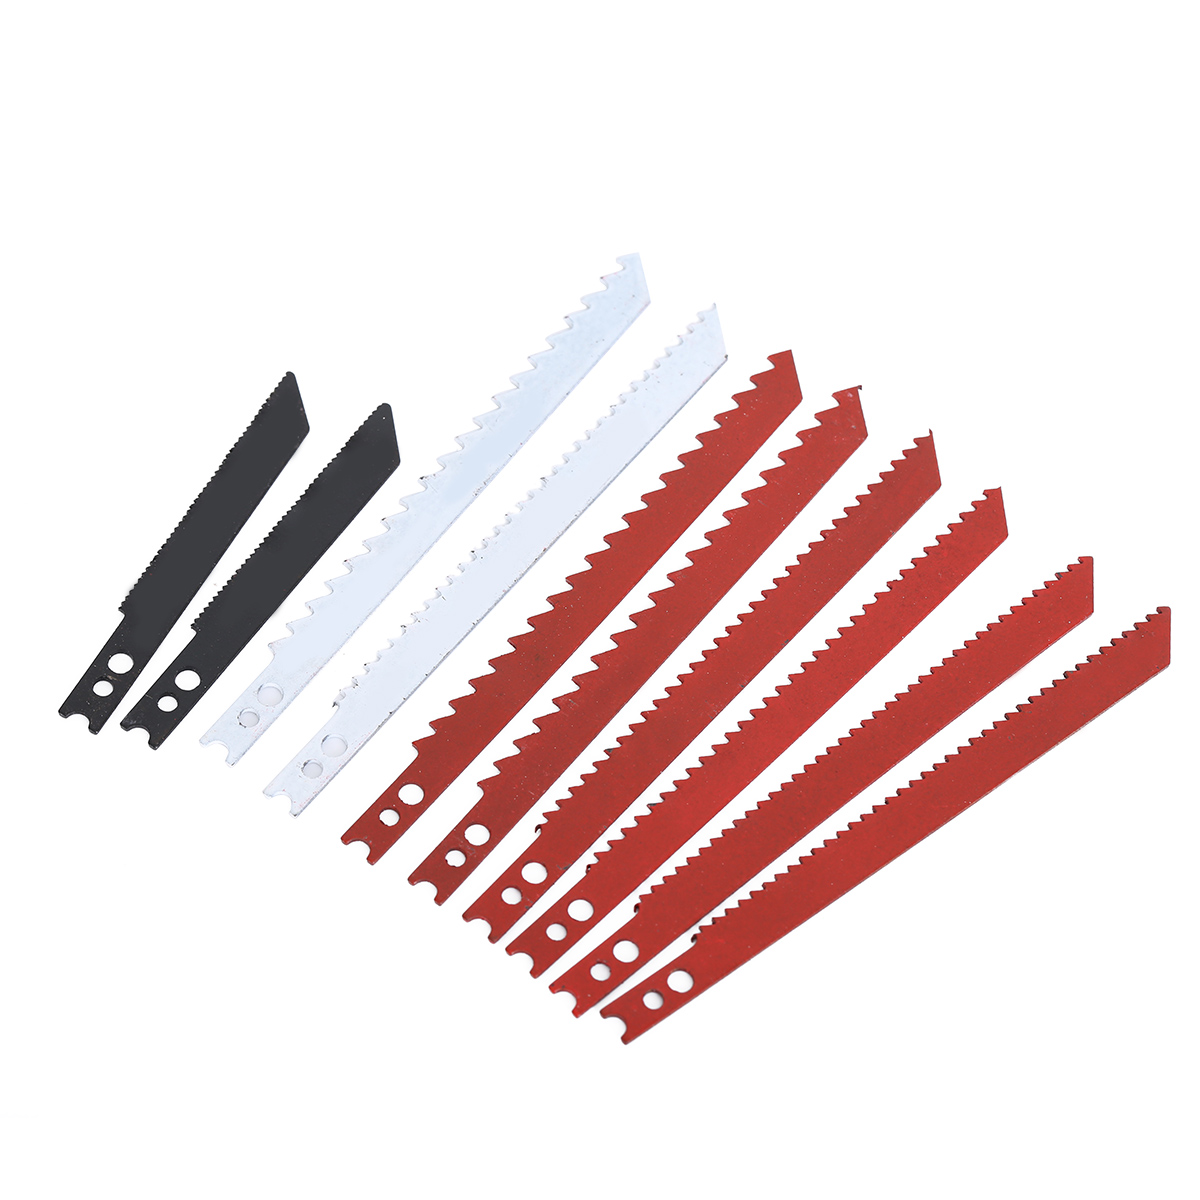 10pcs/set Jig Saw Blades Set High Quality Jig Saw Blades For Metal Plastic Wood Cutting Power Tools